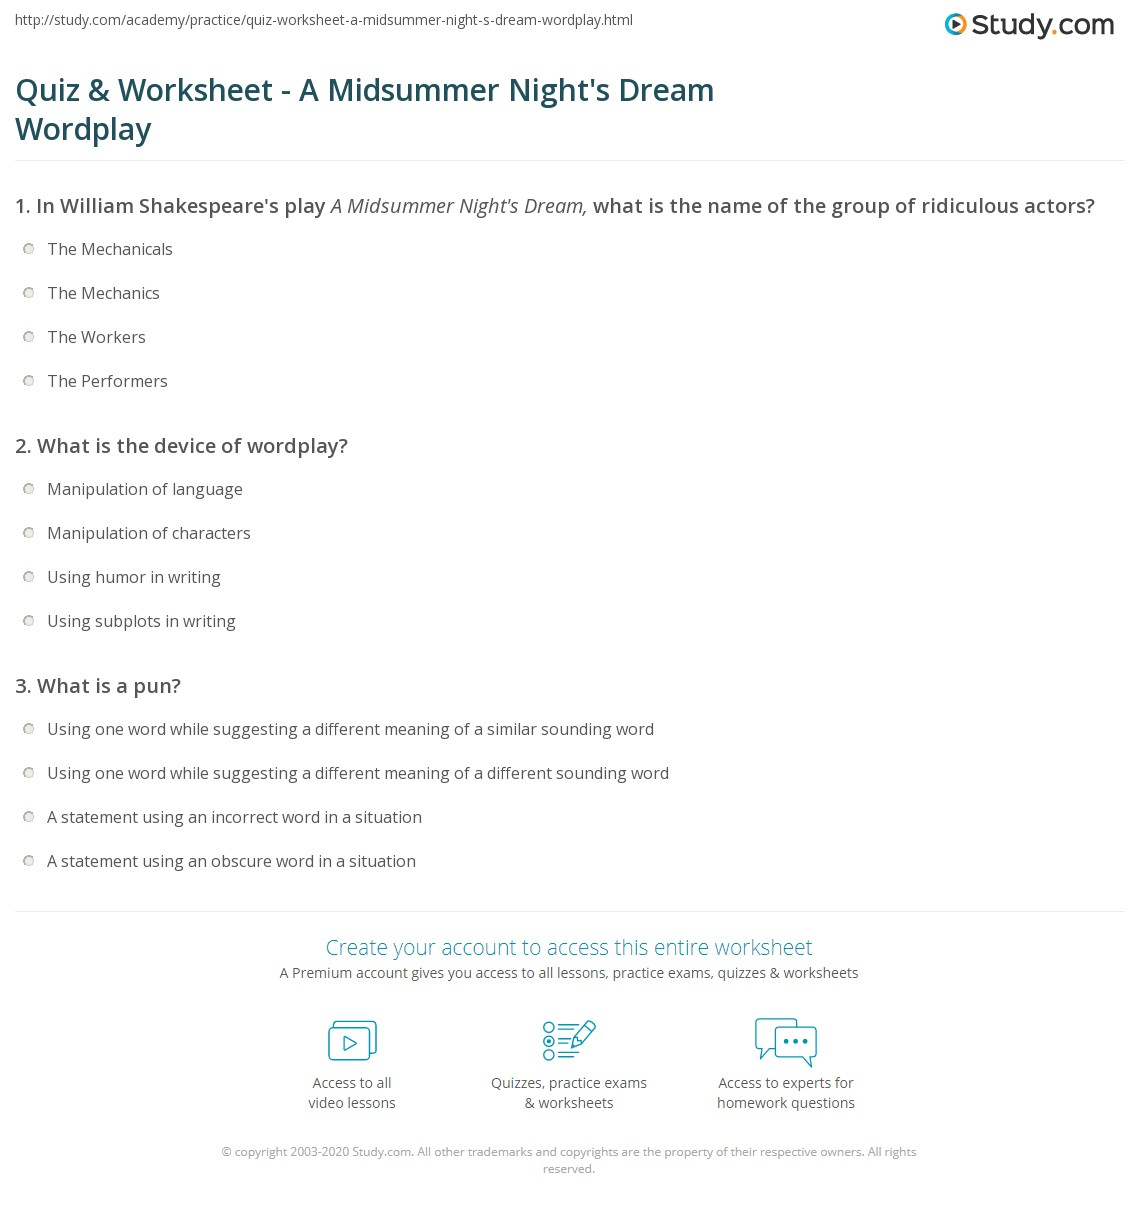 Quiz Worksheet A Midsummer Nights Dream Wordplay Study